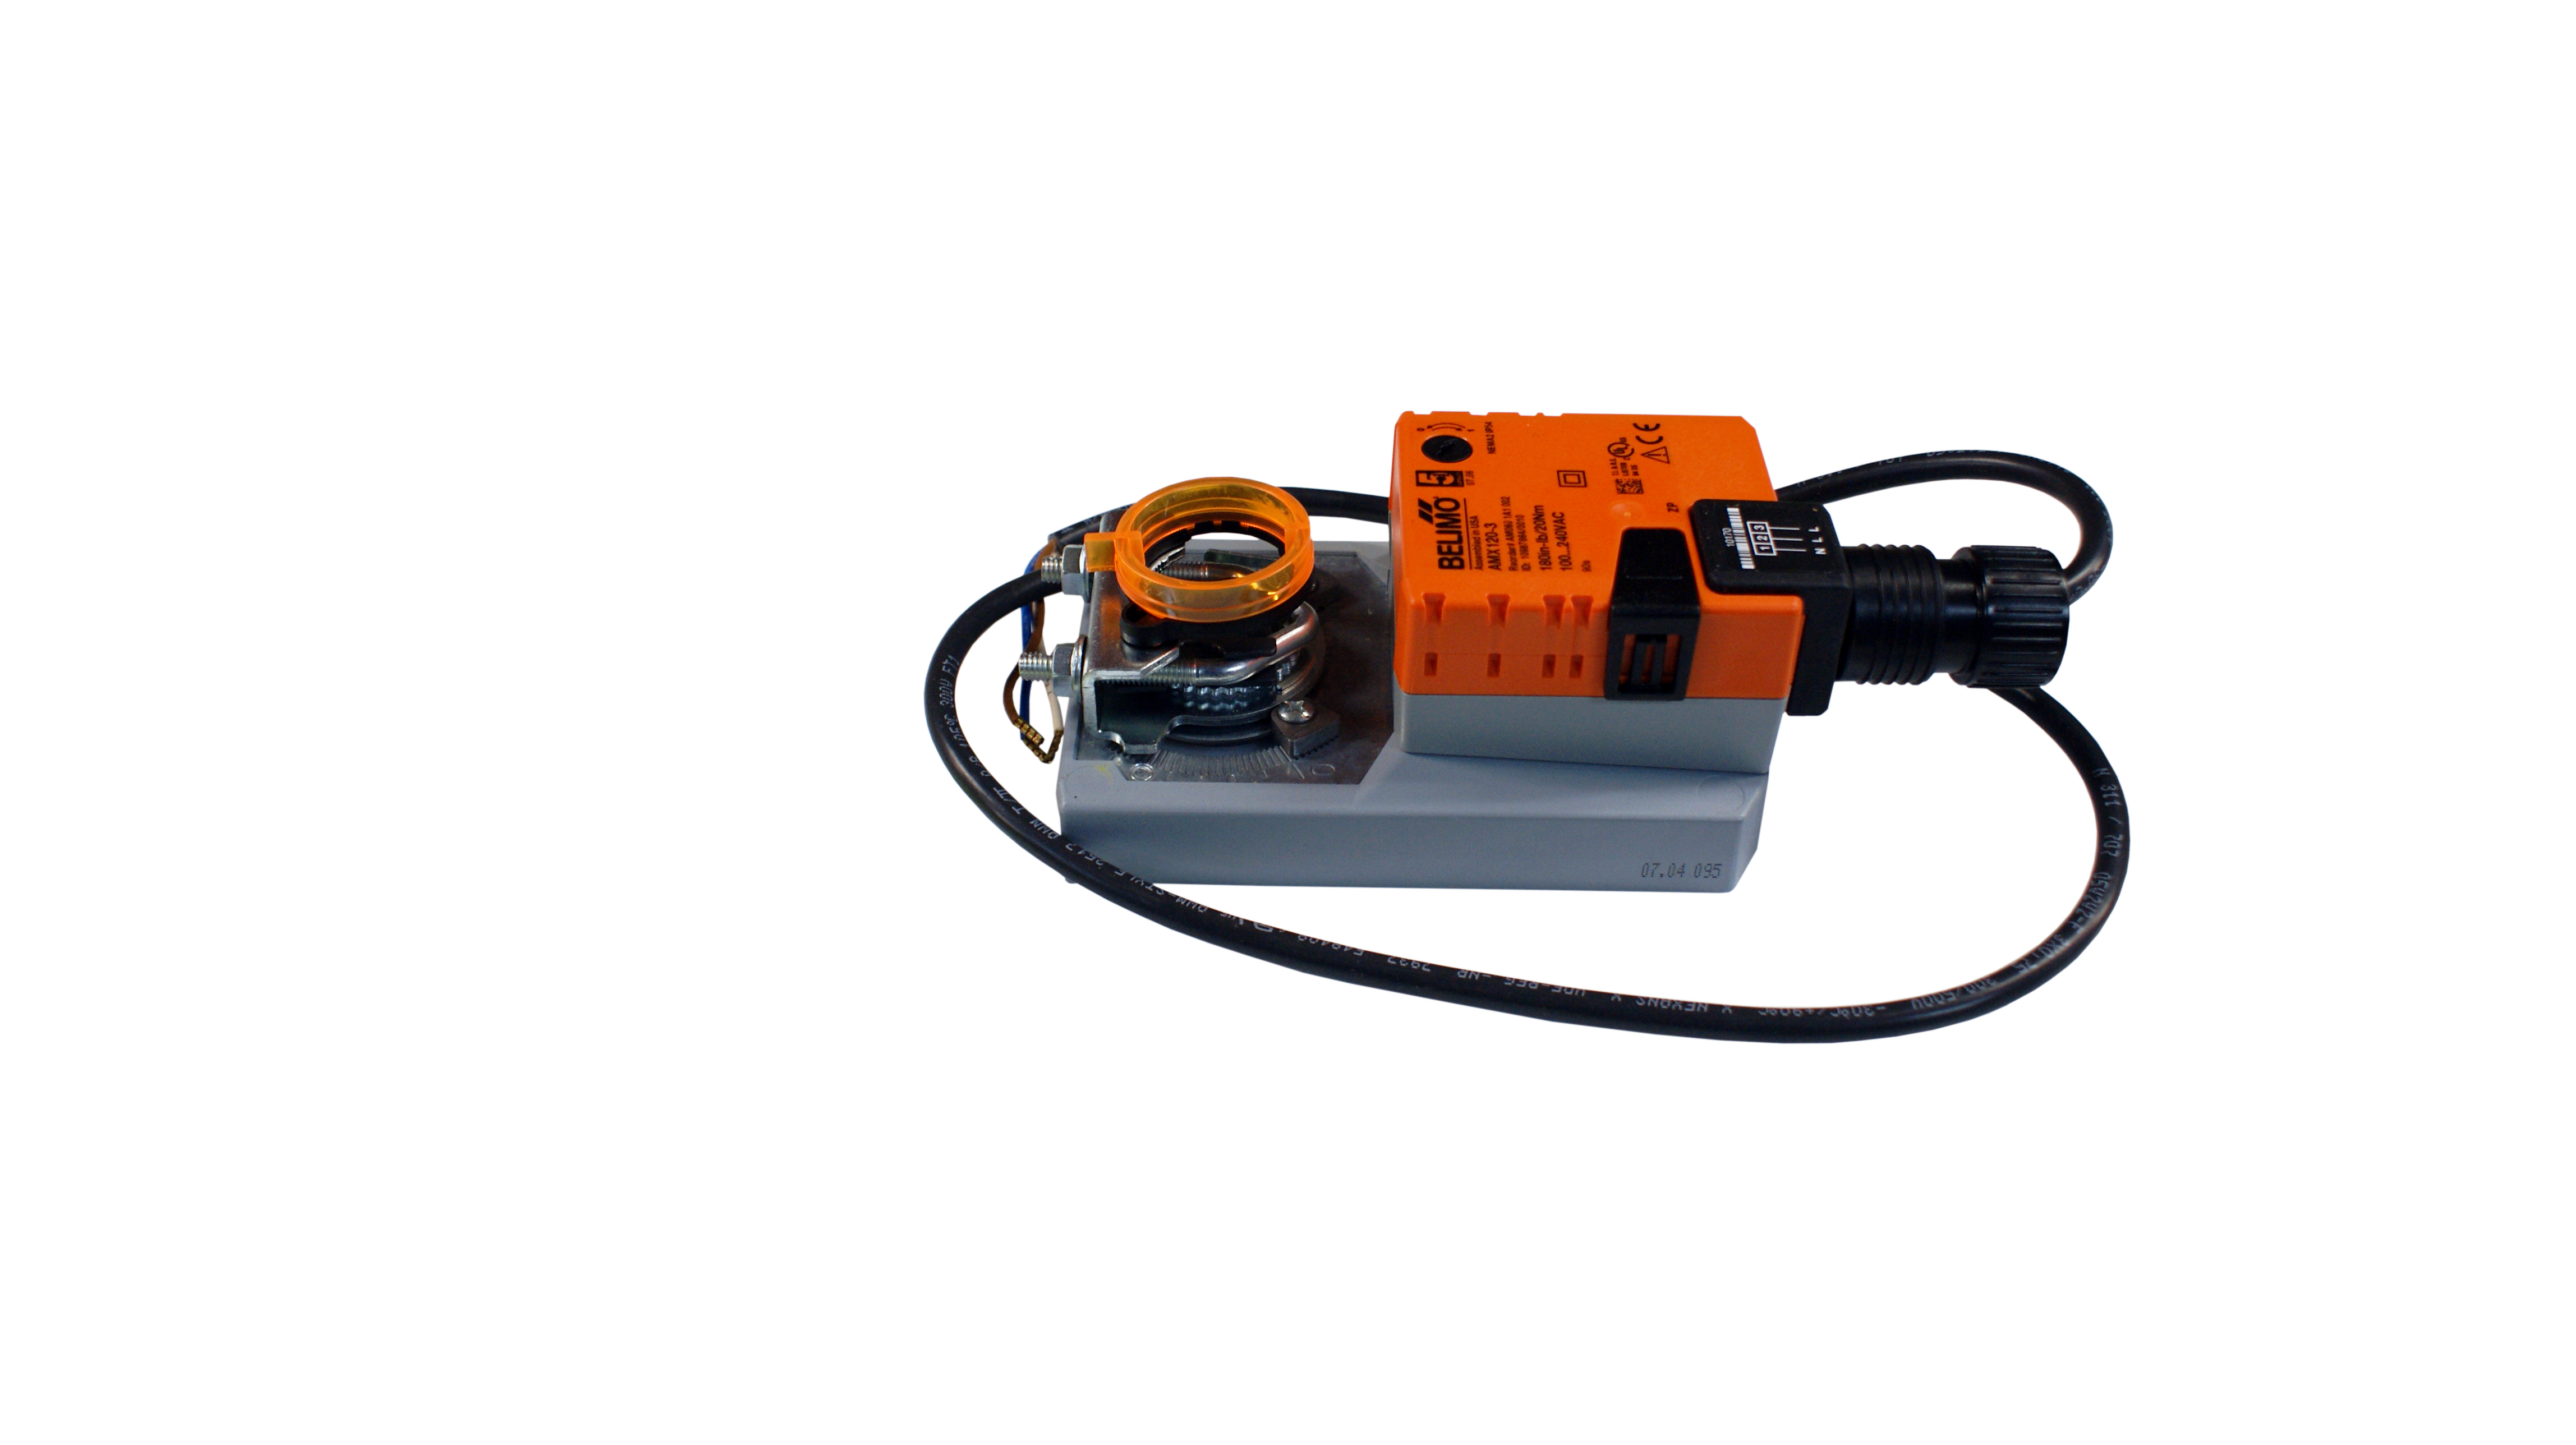 Actuator Motor 110 V 240 V Exhaust Damper Motor Replacement For Sm110 For Paint Booth Accudraft